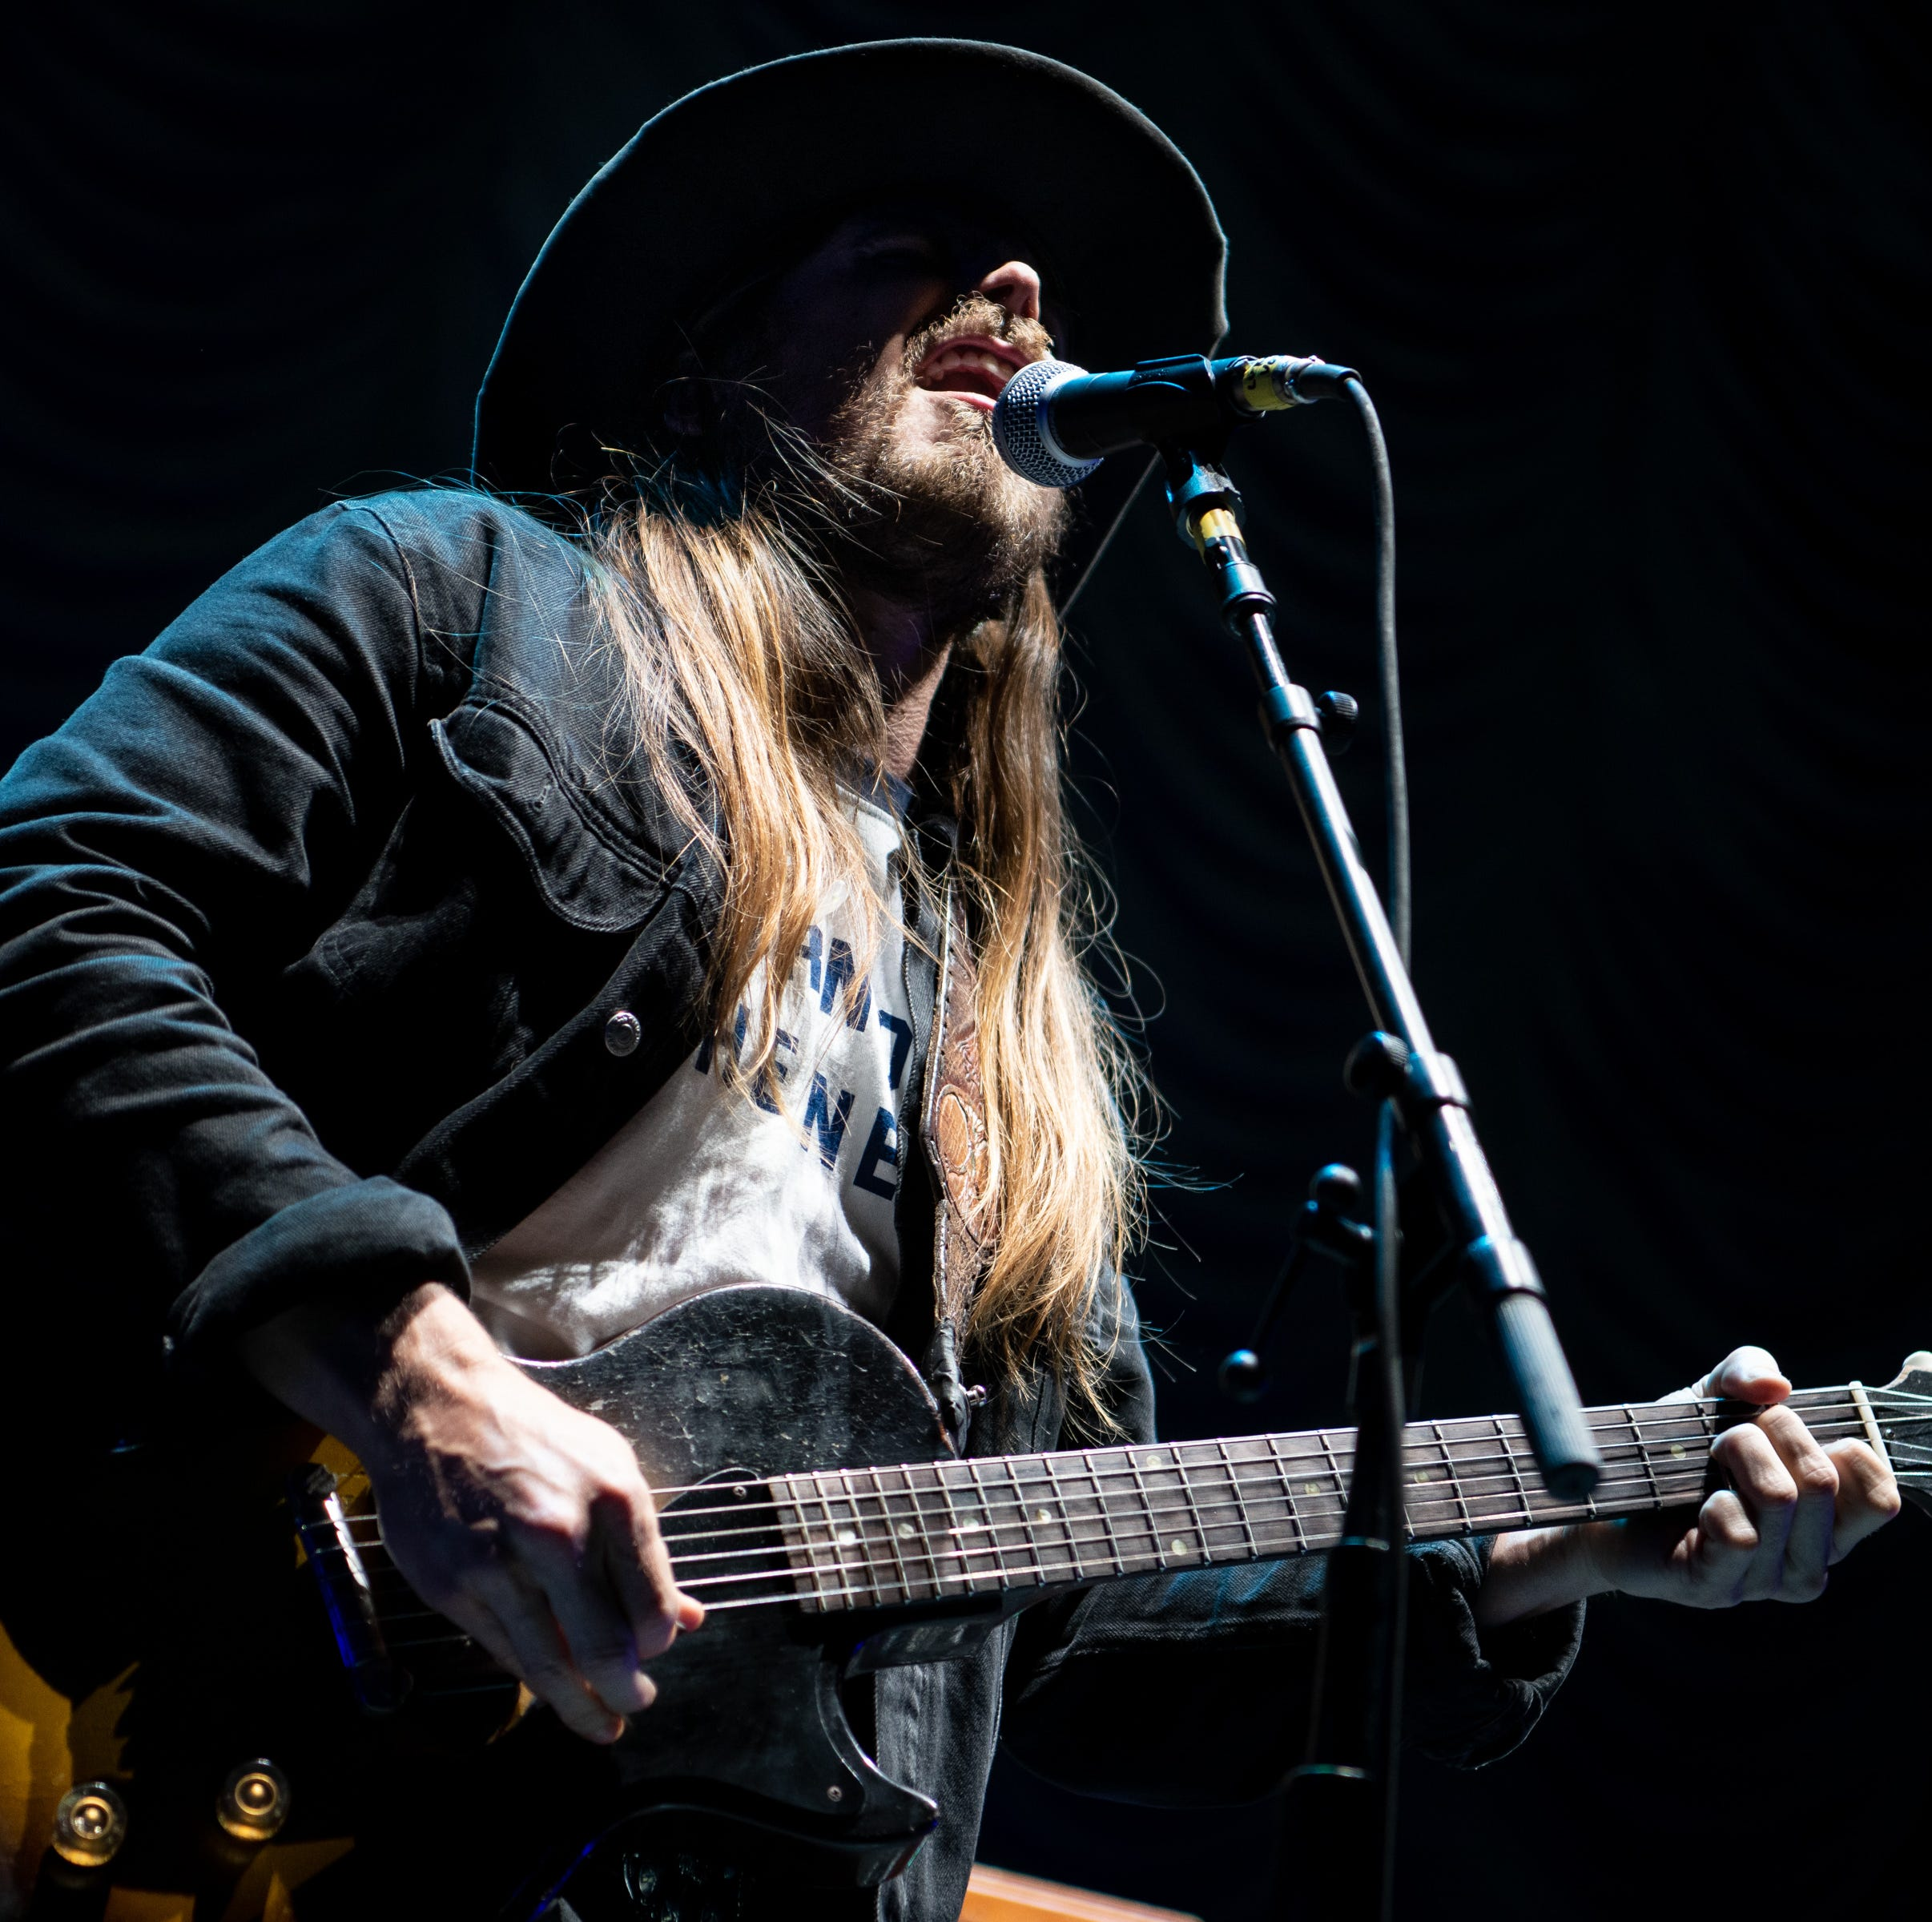 Lukas Nelson booked a show replacing Rhythm N' Blooms. Did he really need a break?